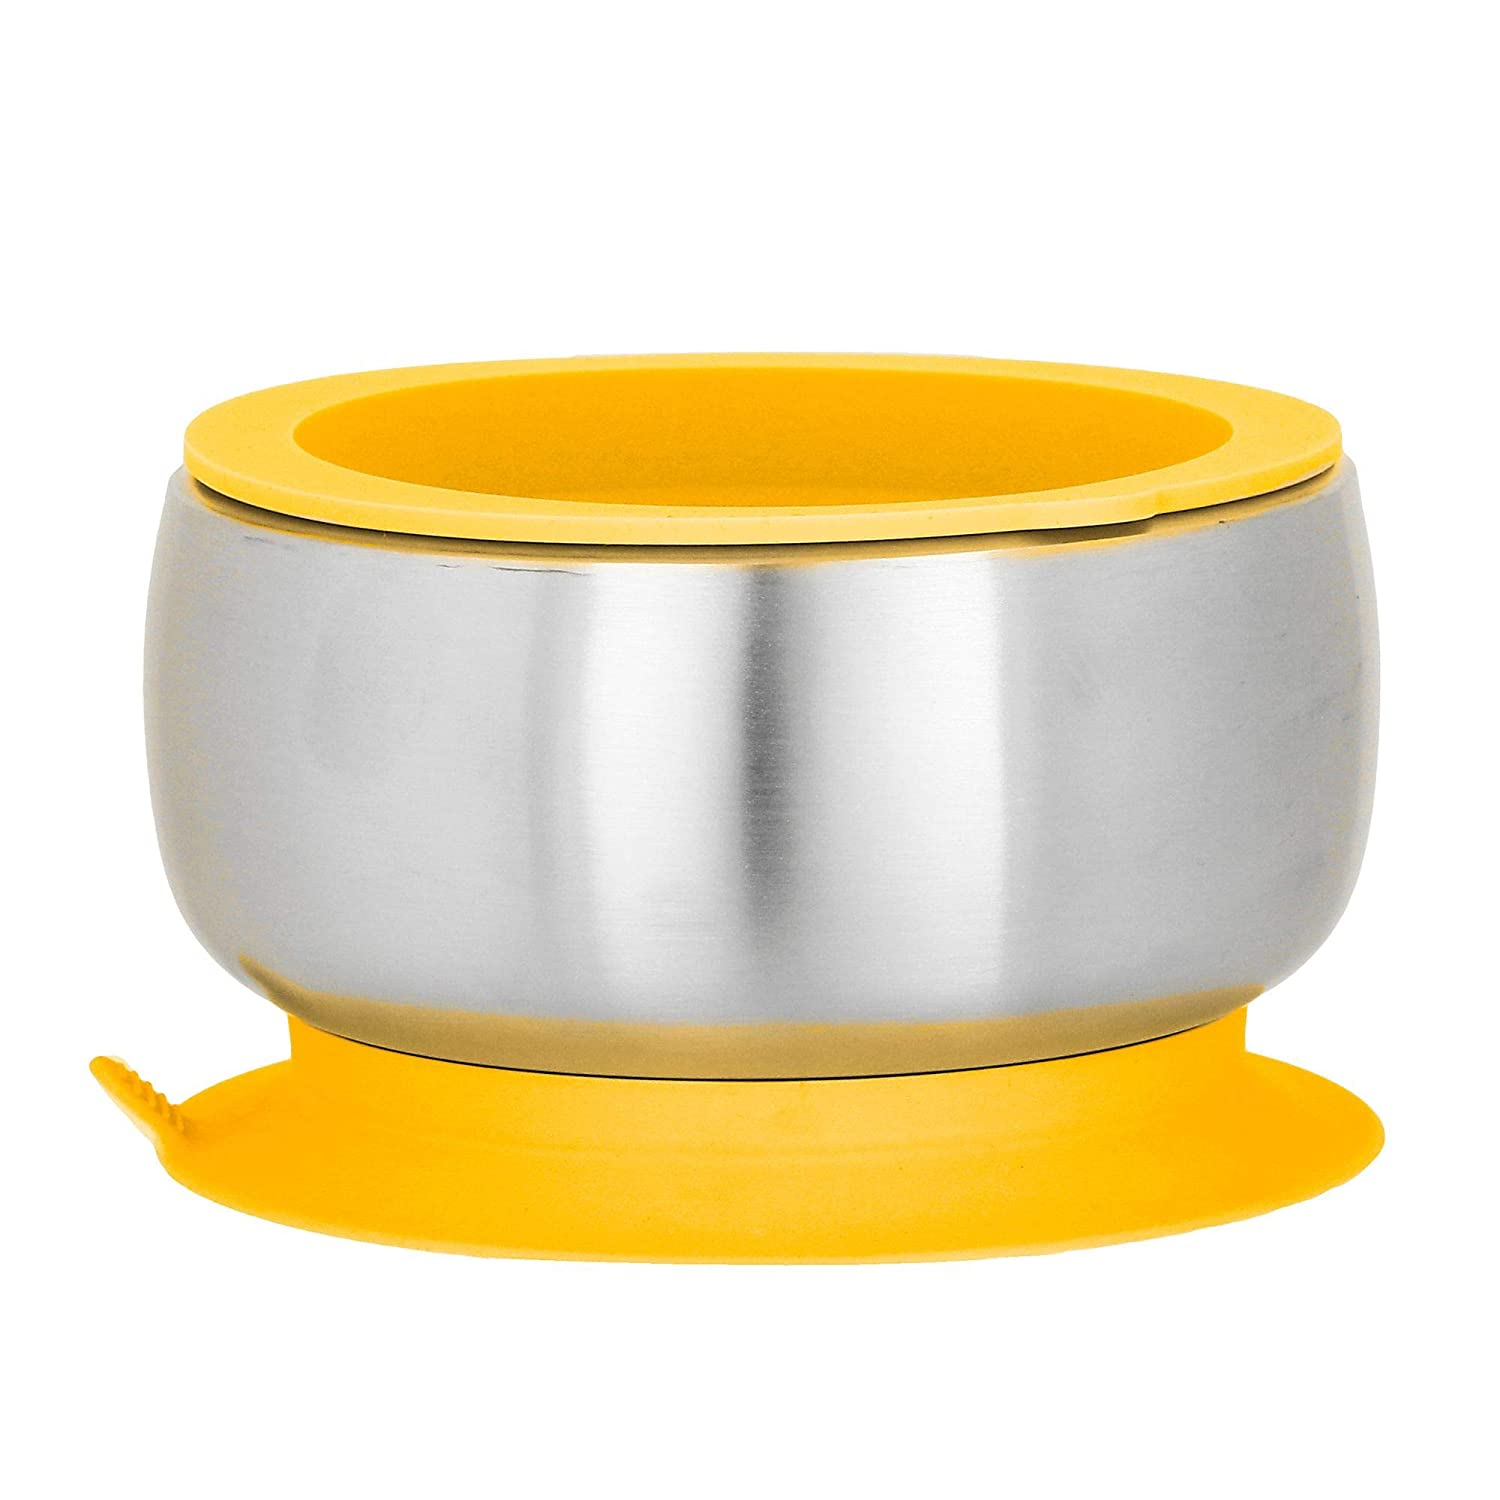 Avanchy Stainless Steel Baby Bowl with Spoon Air Tight Lid Combo, Toddler, Kid, Child Suction Bowl Spoon. 18 8, BPA Free, BPS Free, Lead Free and Phthalate Free. Baby, Yellow